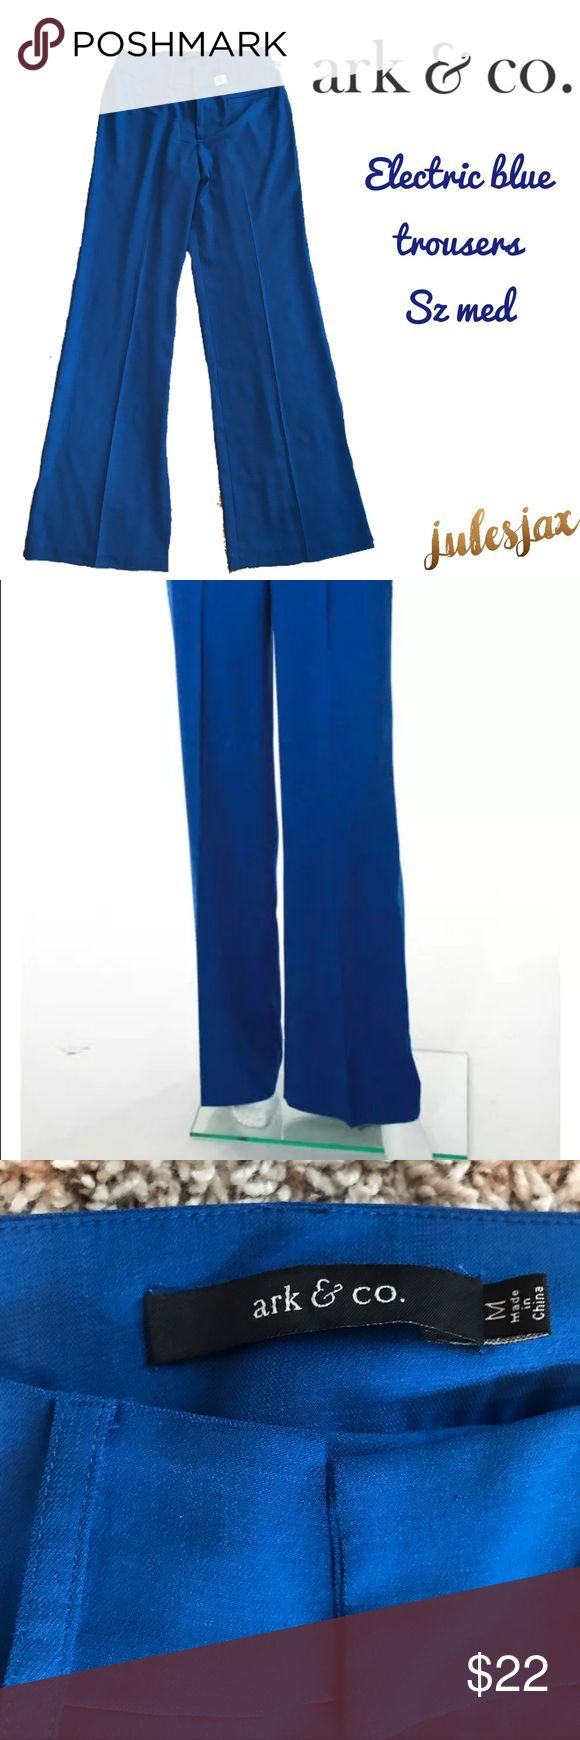 Ark & Co. electric blue soft flowy trousers sz Med Measurements will be posted shortly.  I wrote them down, but they're not with me atm. 😴 Ark & Co Pants Trousers